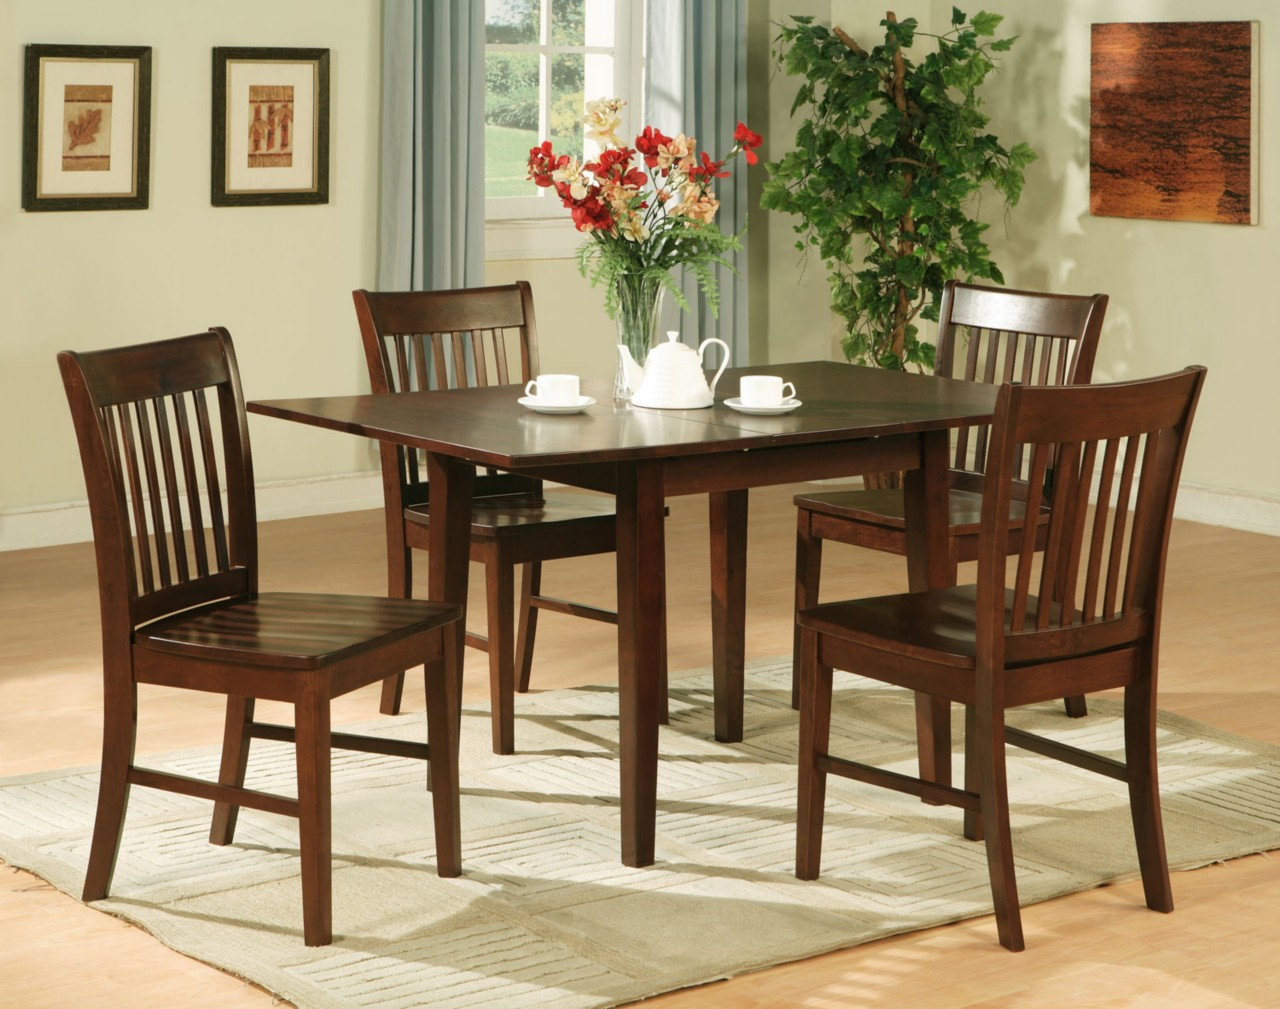 Dining Room Furniture Sets (Image 2 of 10)